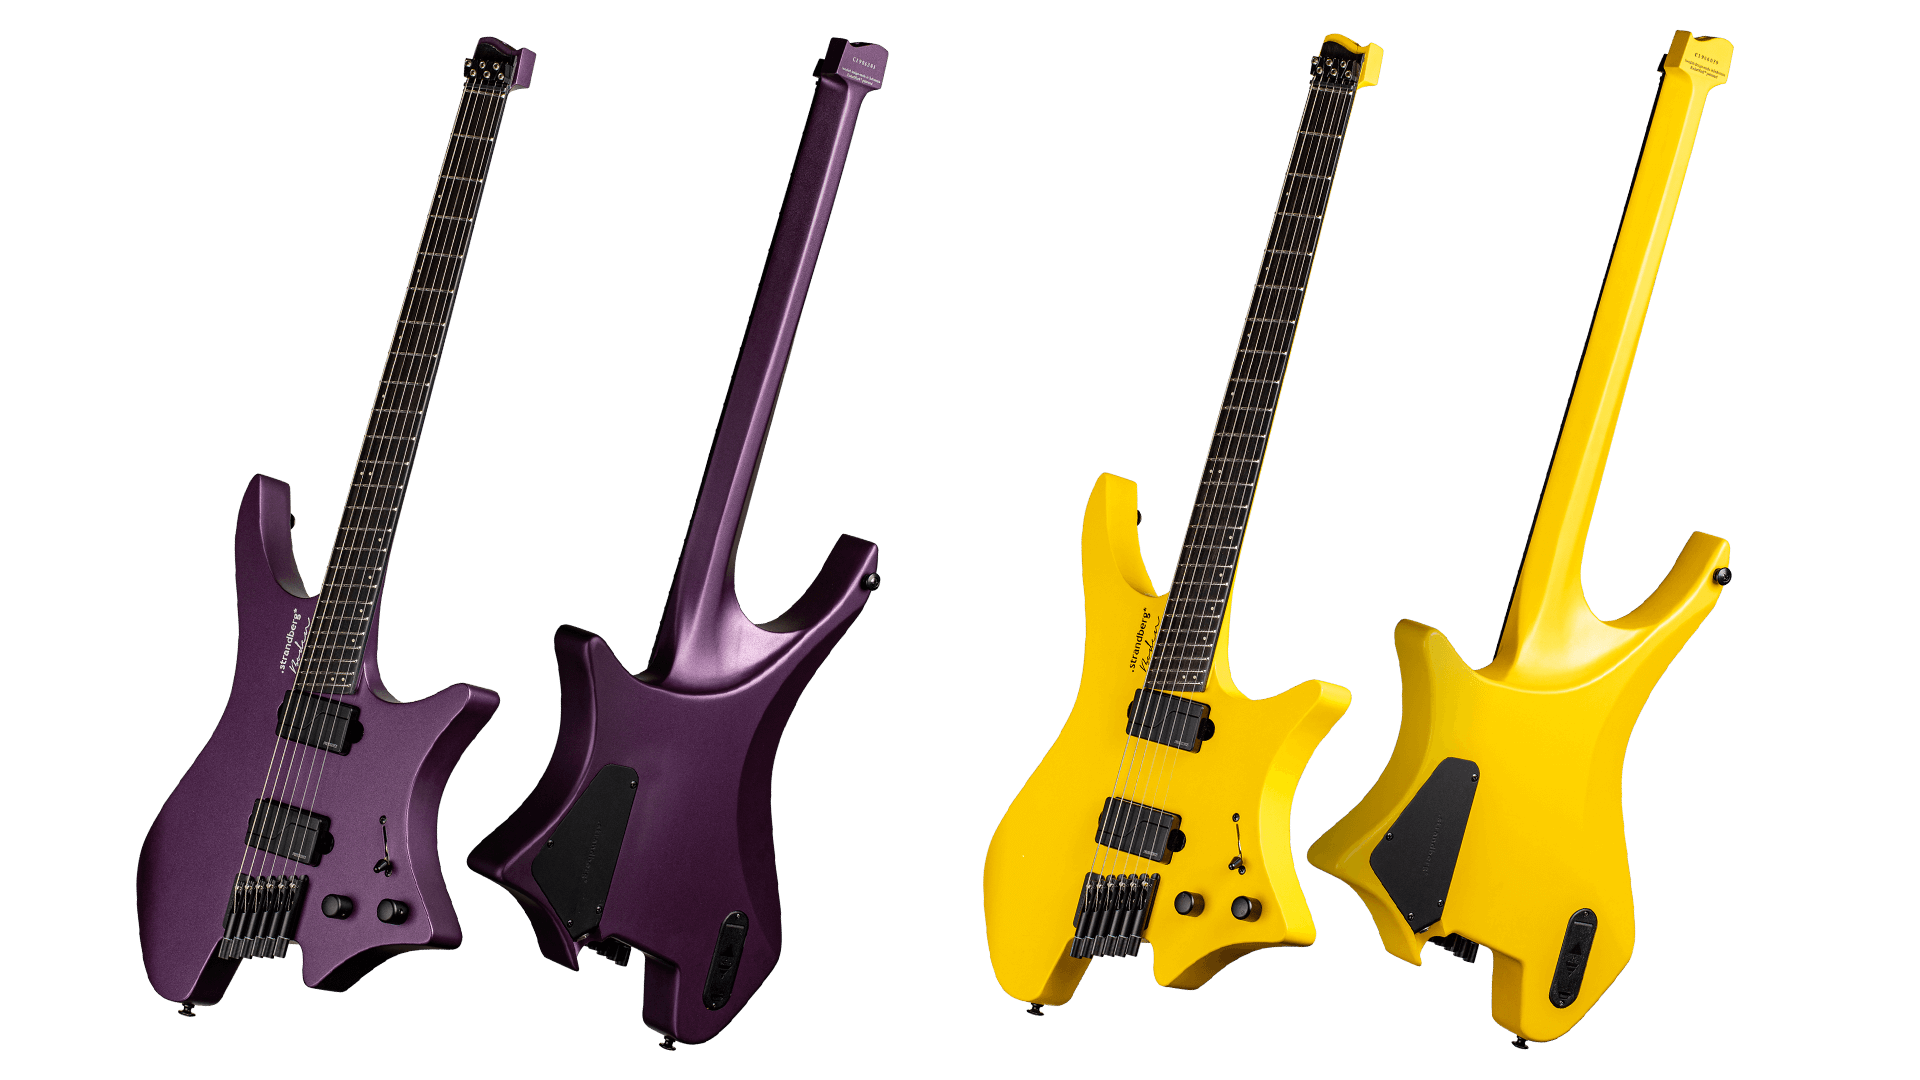 Headless Guitar Boden Metal purple and yellow front view